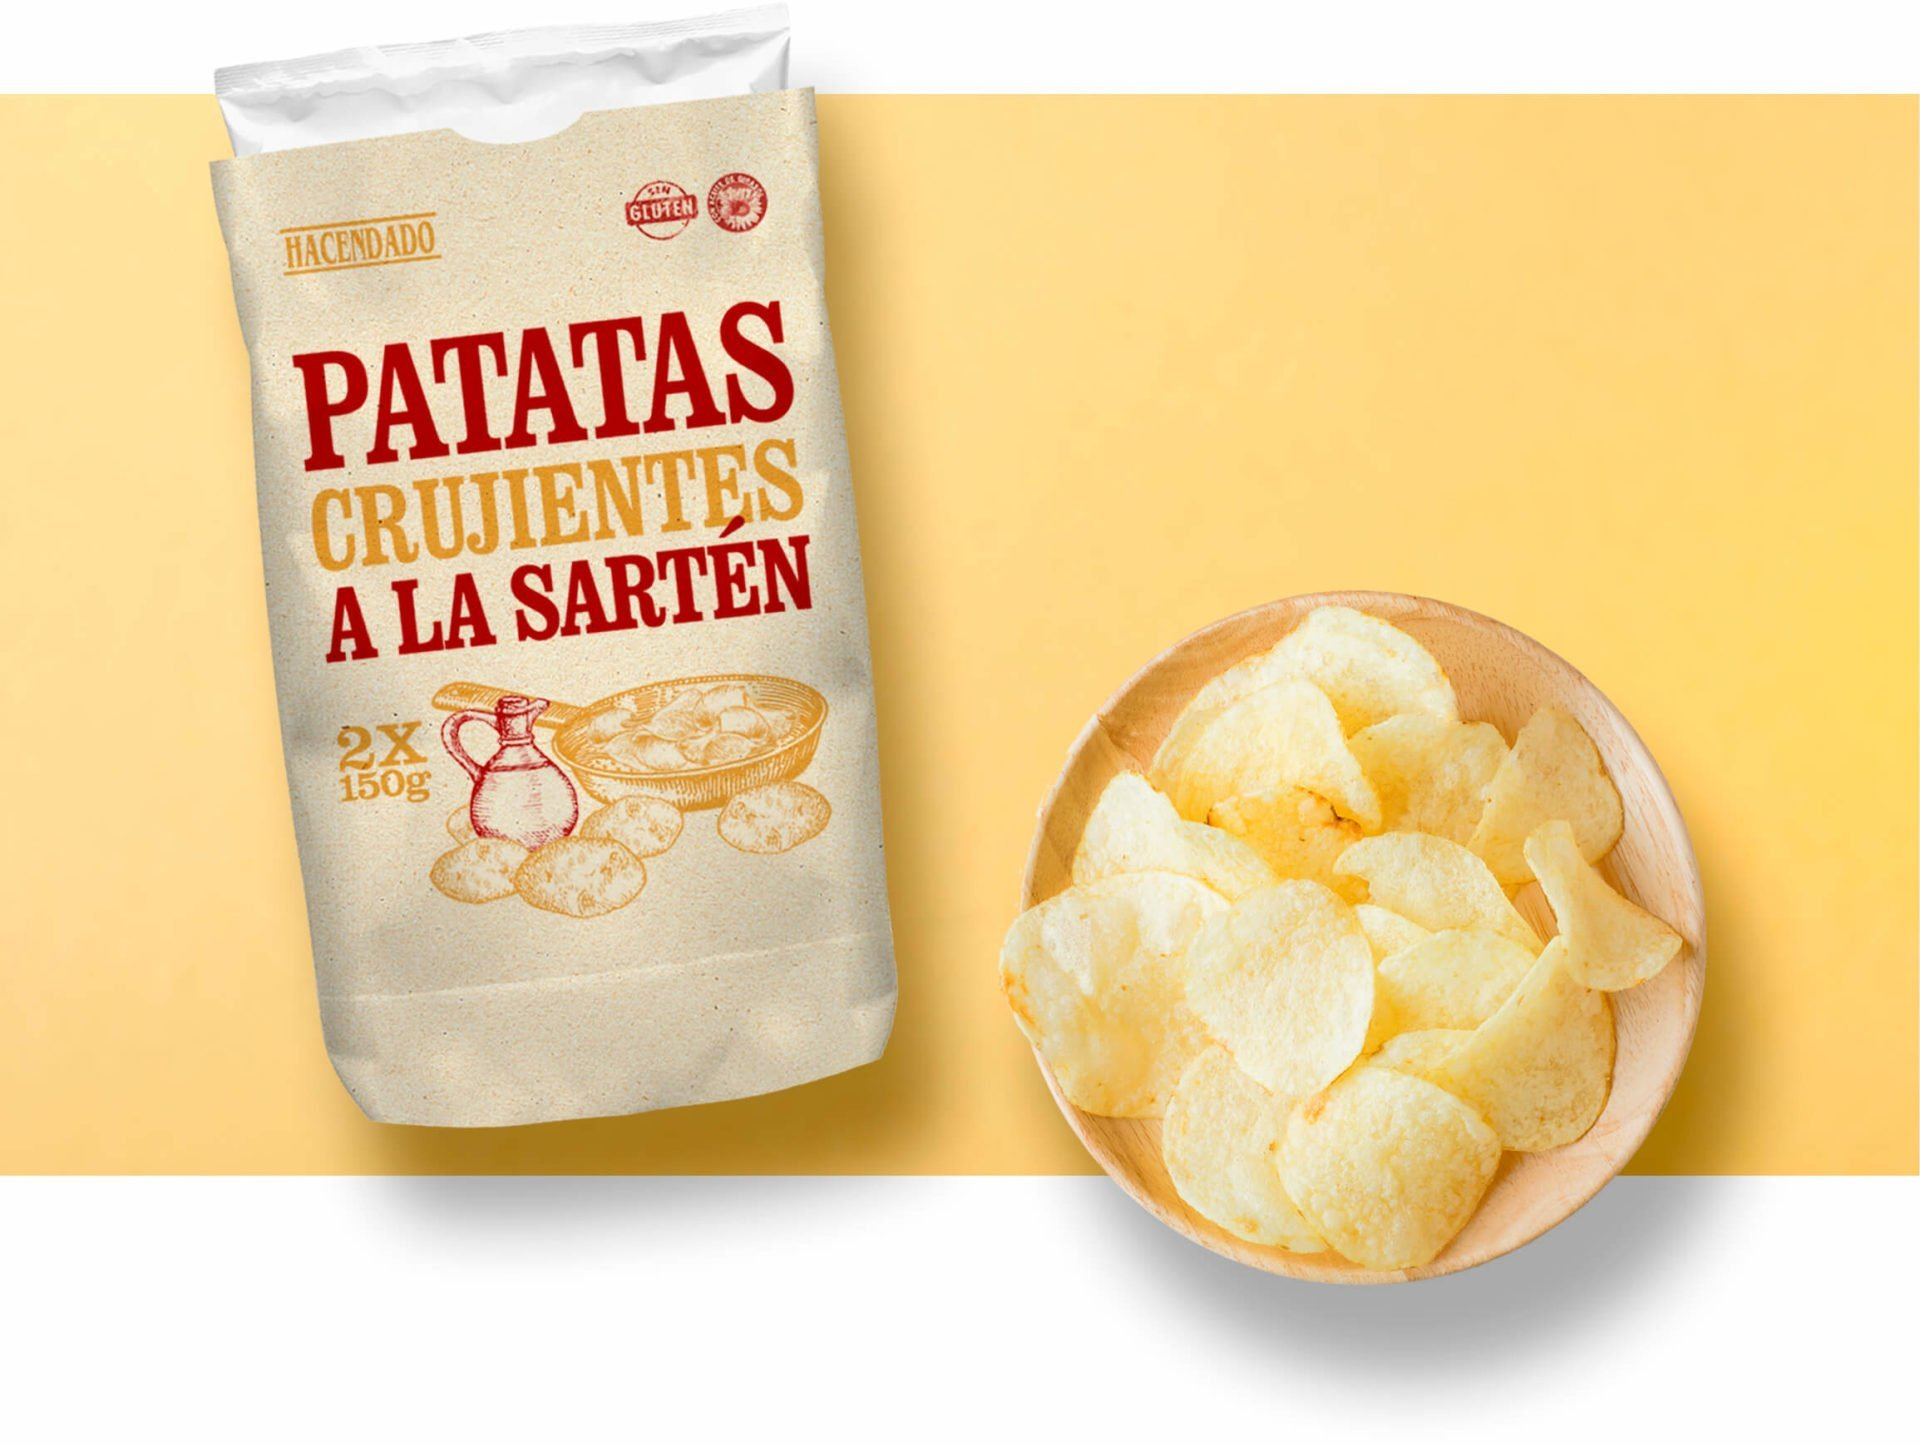 packaging-patatas-churrería-a-la-sarten-mercadona-hacendado